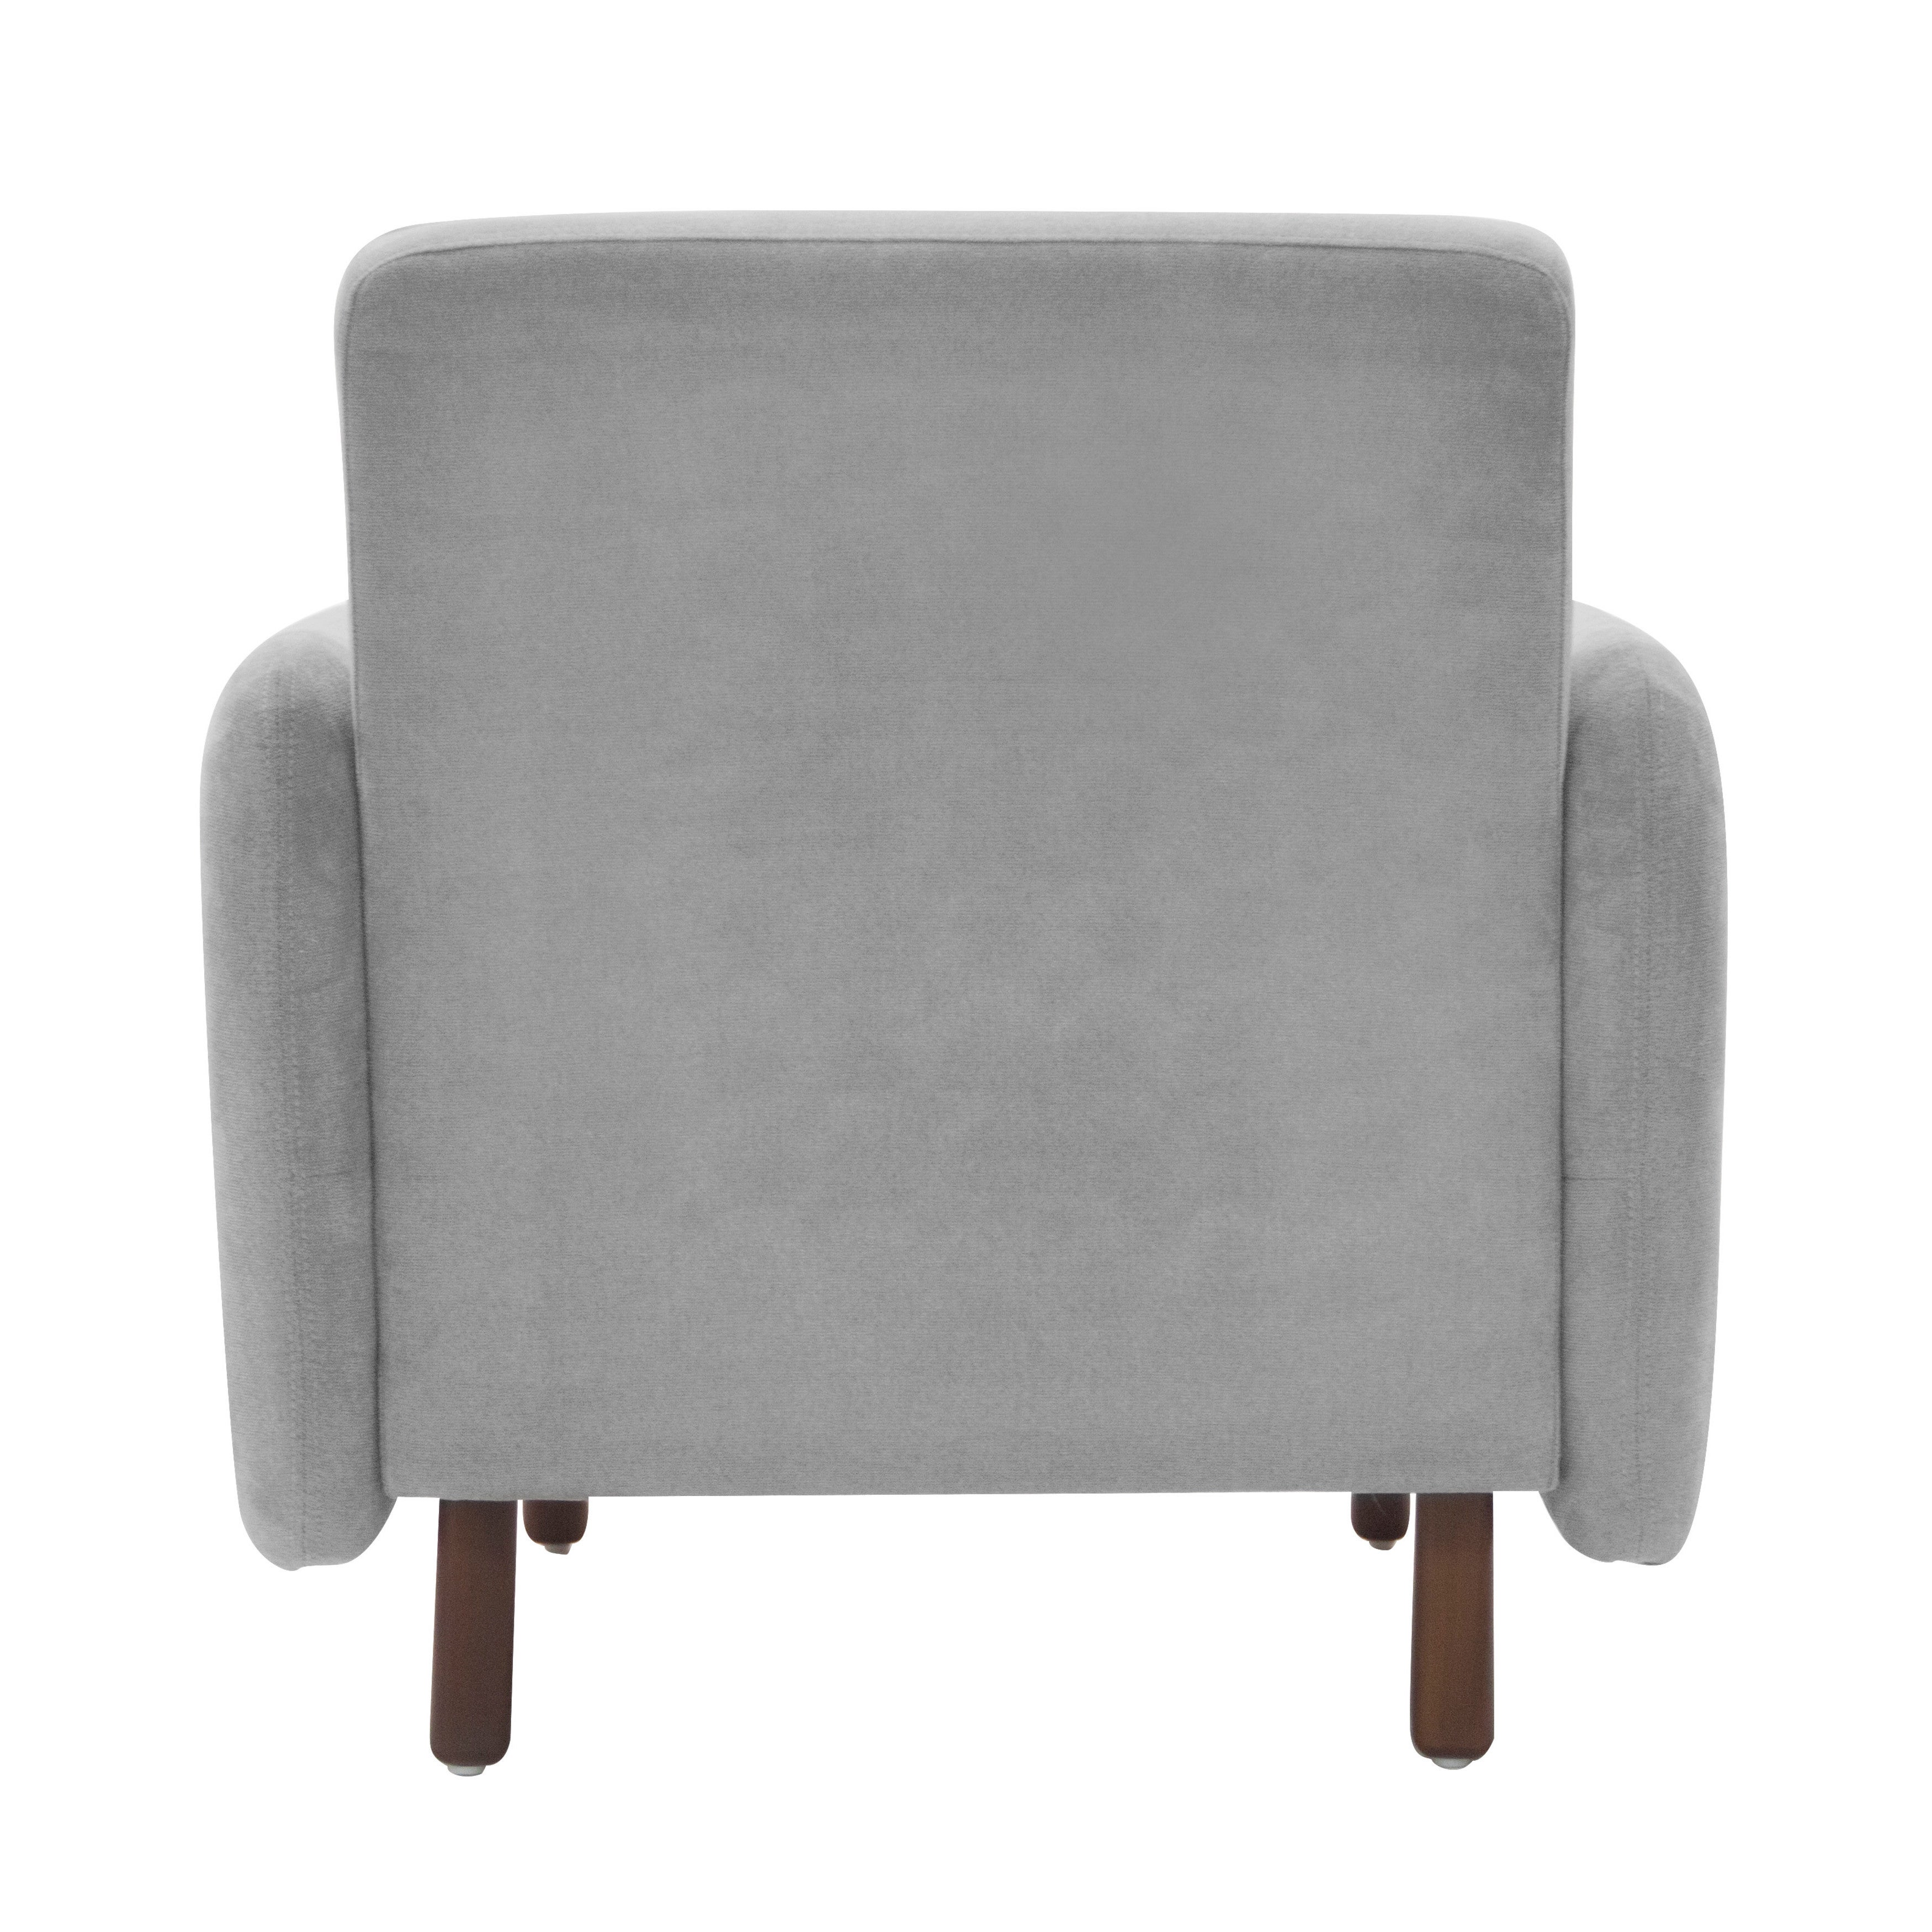 Attrayant Shop Serta Savanna Collection Arm Chair   Free Shipping Today    Overstock.com   15925974